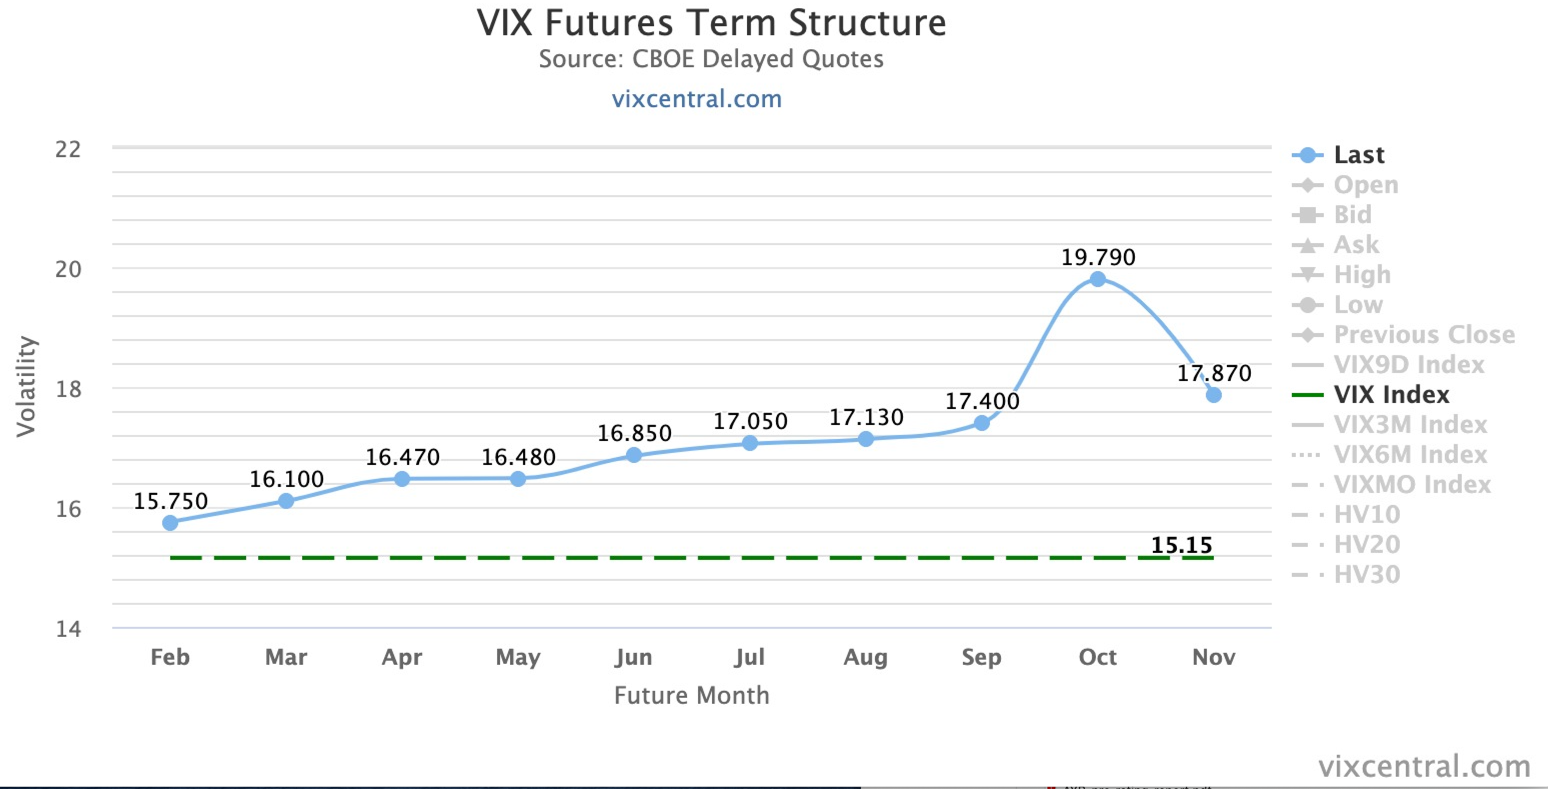 VIX Term Structure